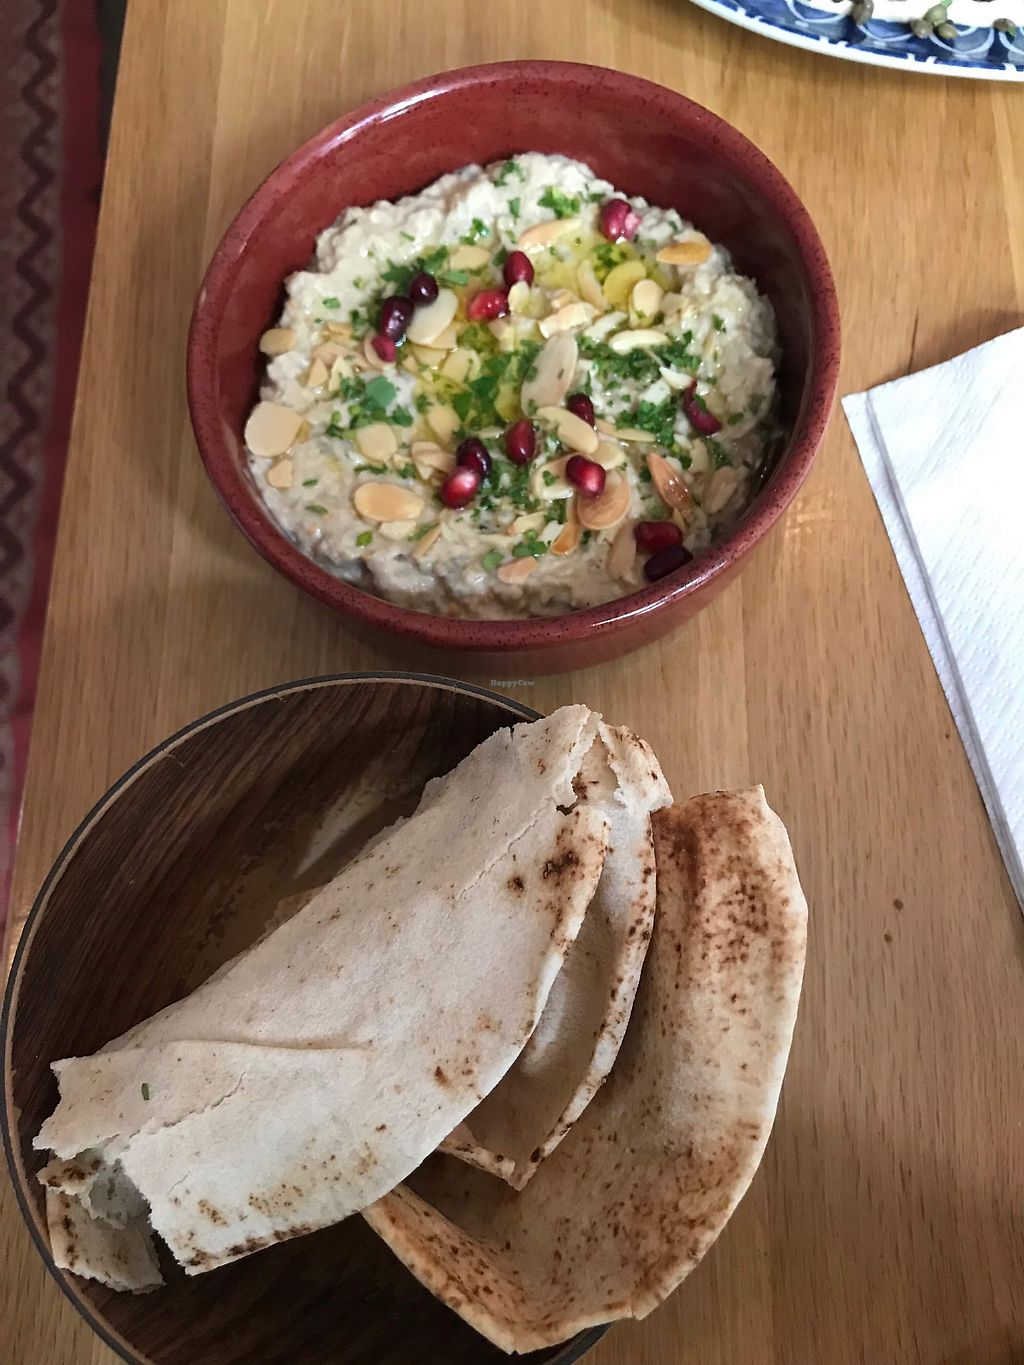 "Photo of Dobrumba  by <a href=""/members/profile/ellealexa"">ellealexa</a> <br/>Baba Ghanoush Dip  <br/> April 17, 2018  - <a href='/contact/abuse/image/90500/387240'>Report</a>"